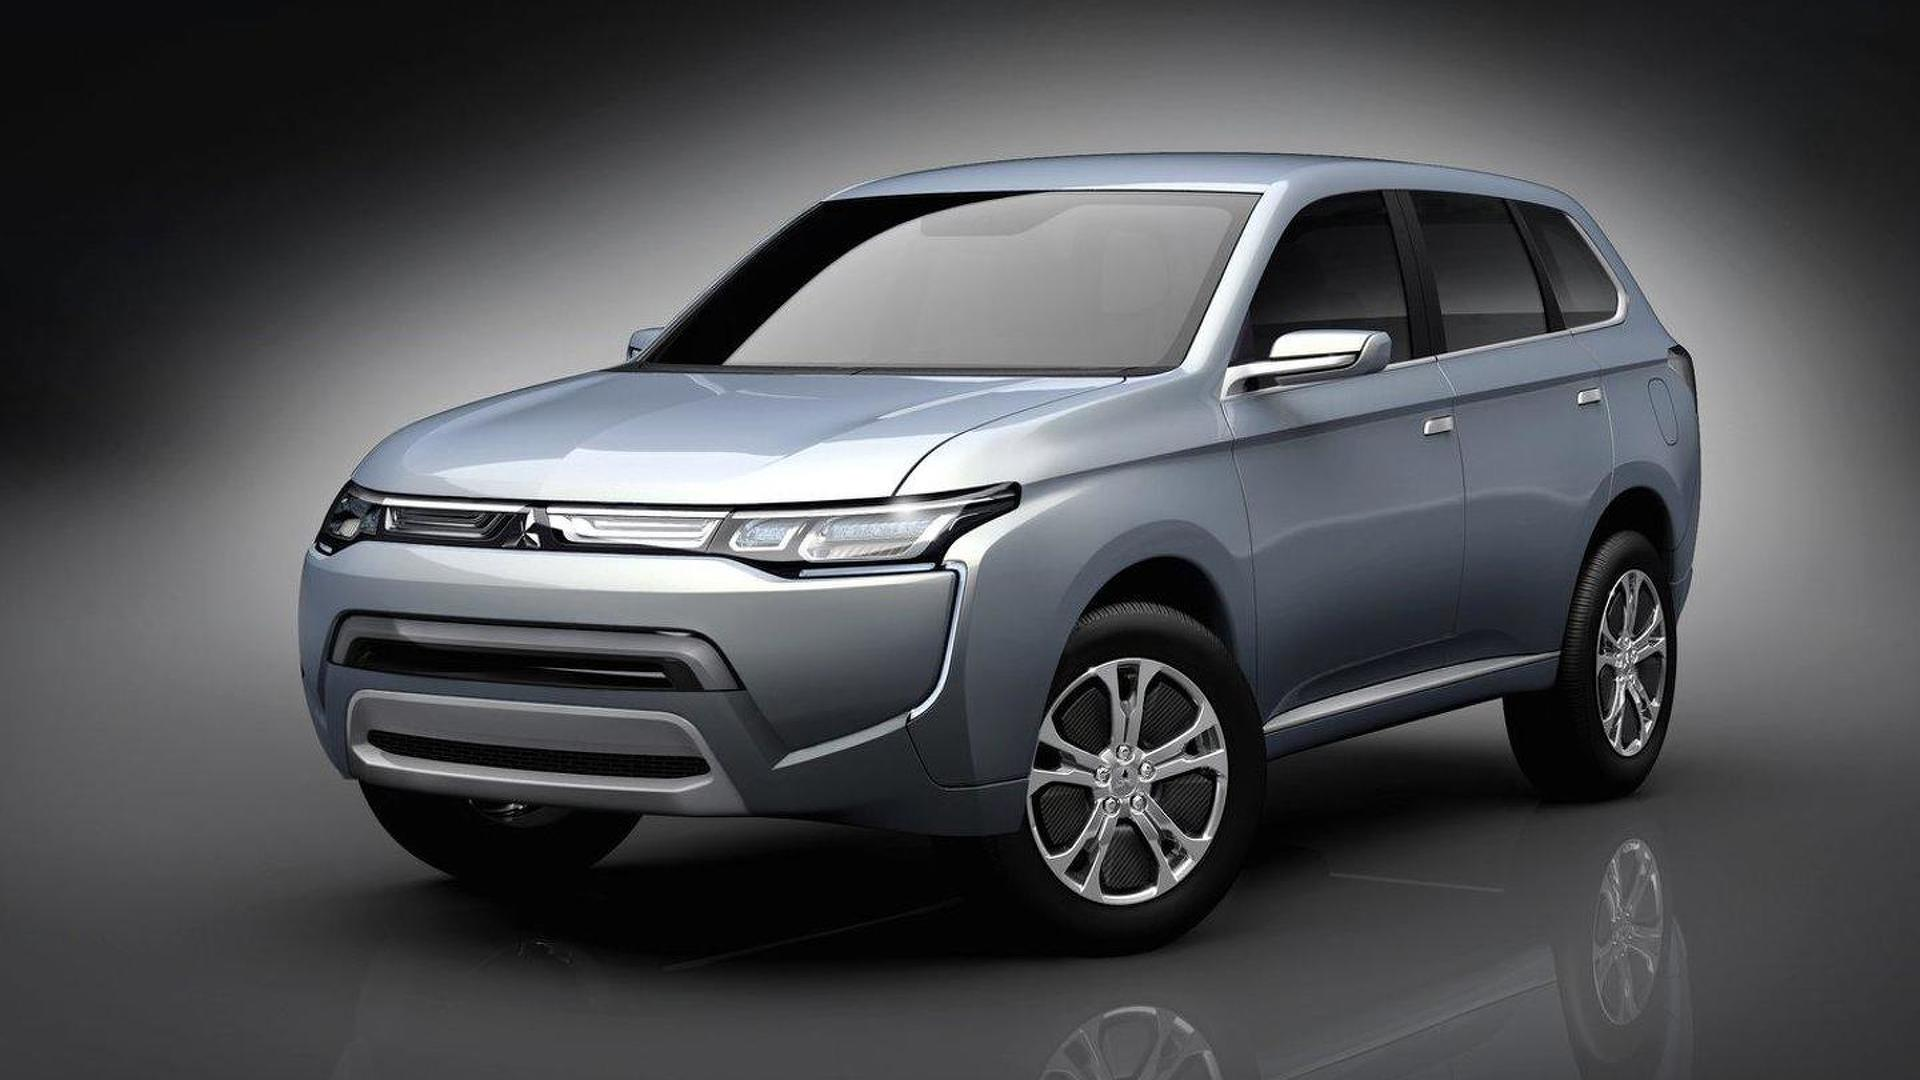 Mitsubishi Mirage global car and Concept PX-MiEV II to debut in Tokyo